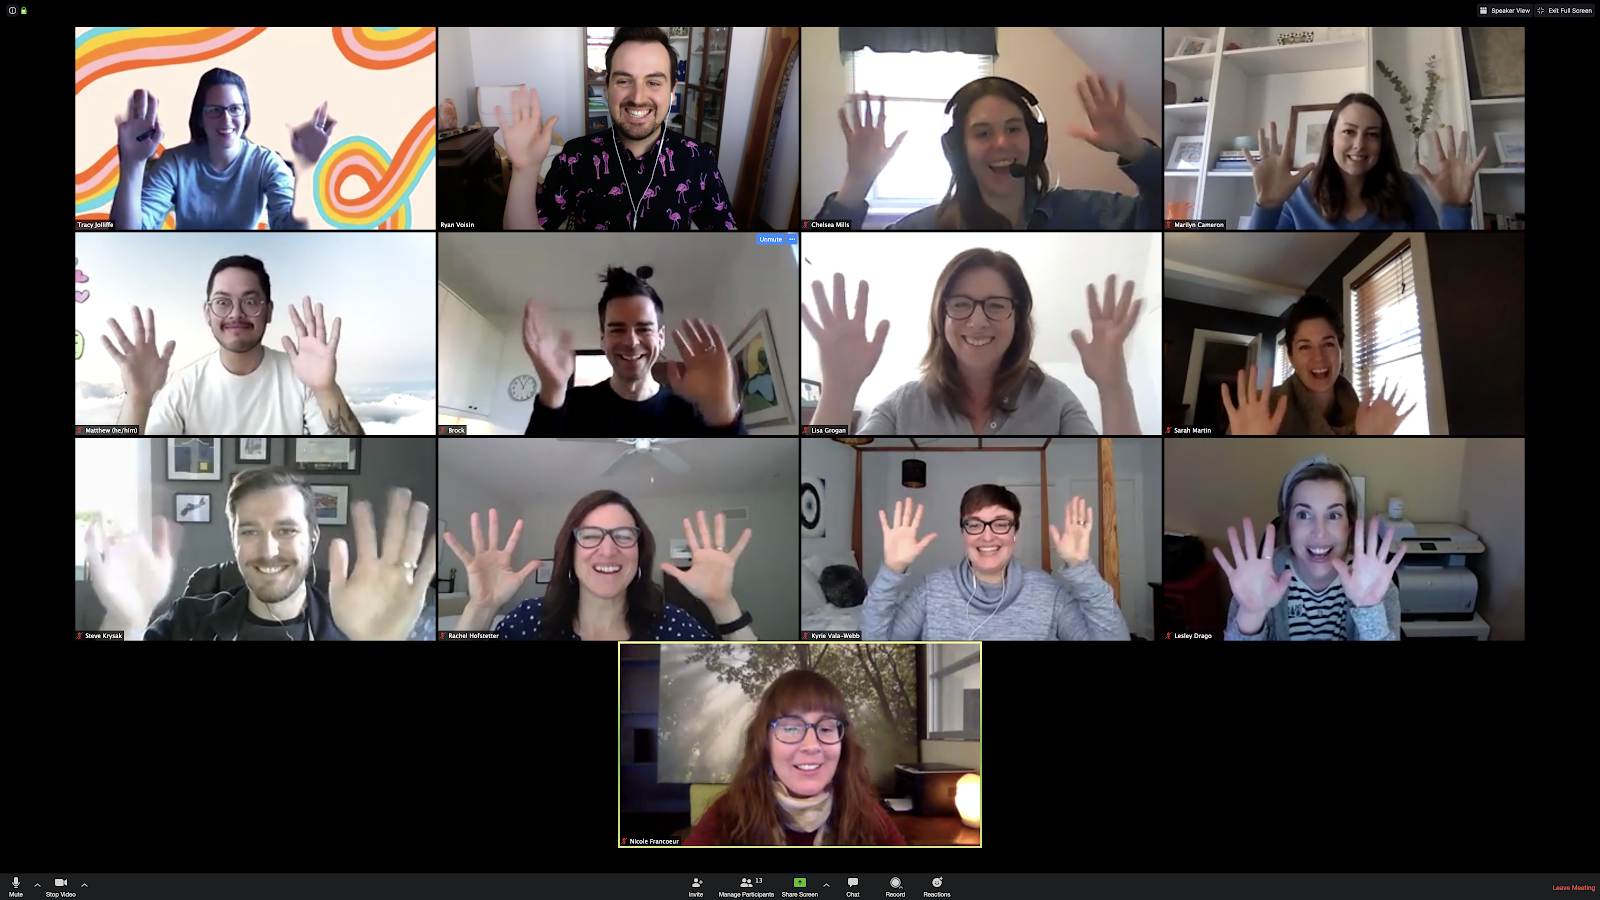 A group of Overlappers on a video conference call with their hands raised.